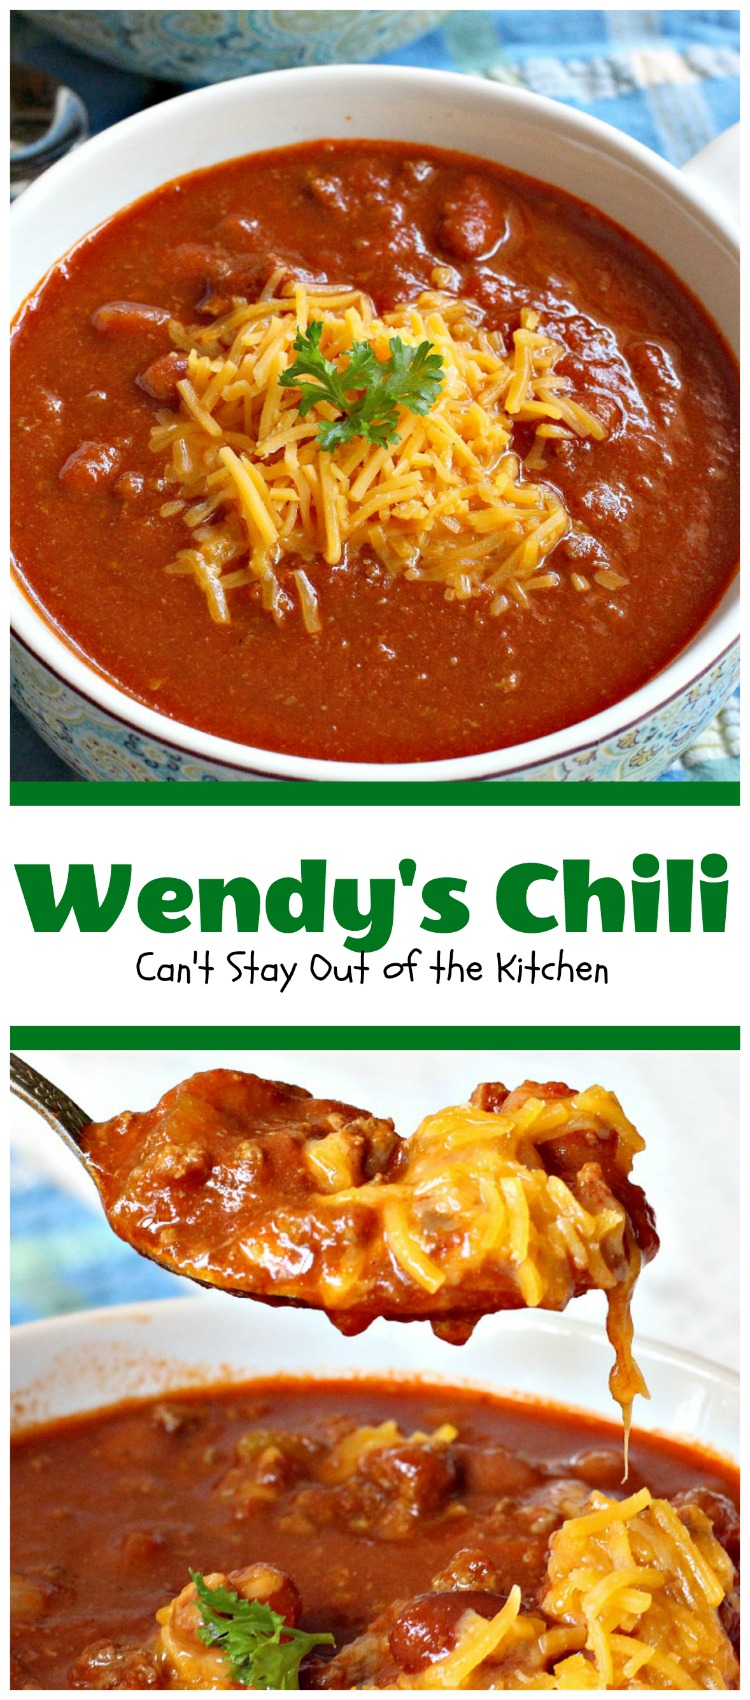 wendys chili Wendy's nutrition and health information we work hard to offer our customers high-quality, fresh food choices we've provided nutrition information for many years, both in our restaurants and on wendyscom.